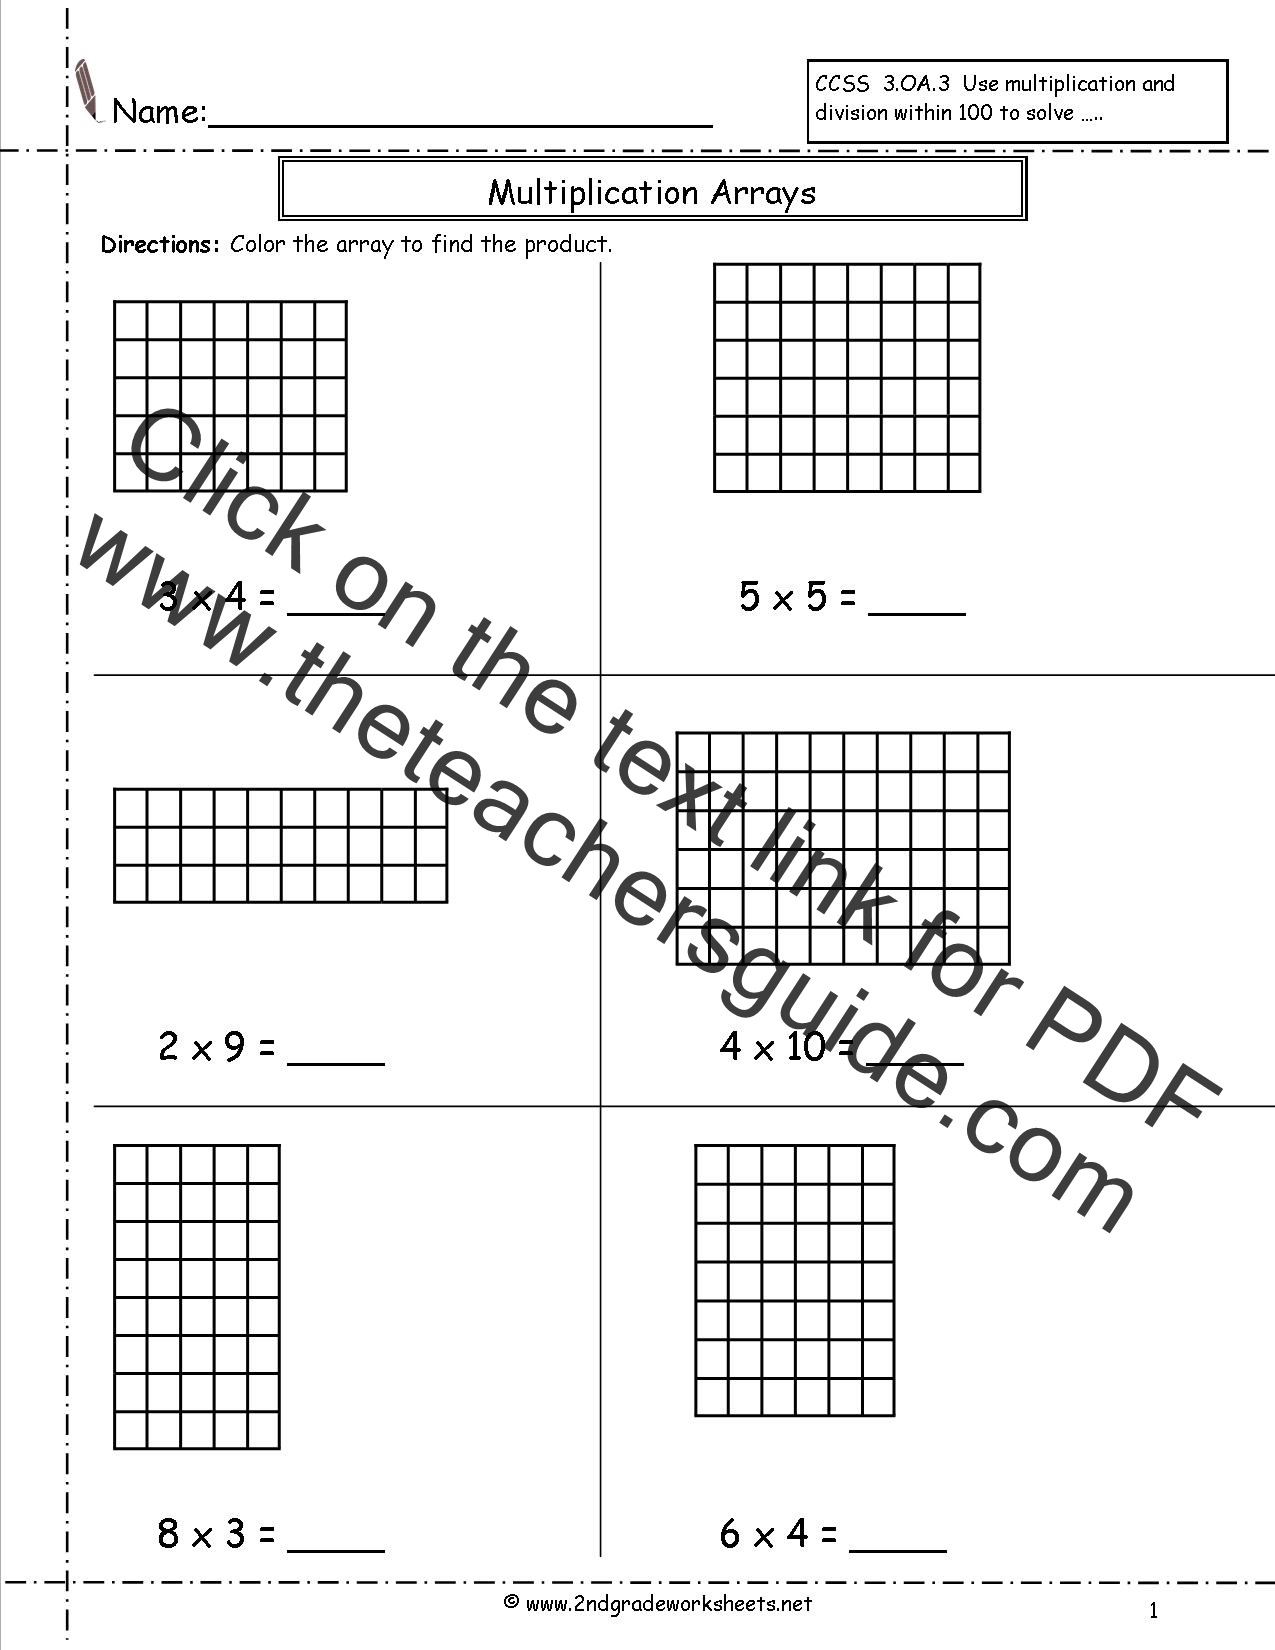 Worksheets Common Core Math Worksheets 3rd Grade arrays worksheets multiplication array worksheet common core